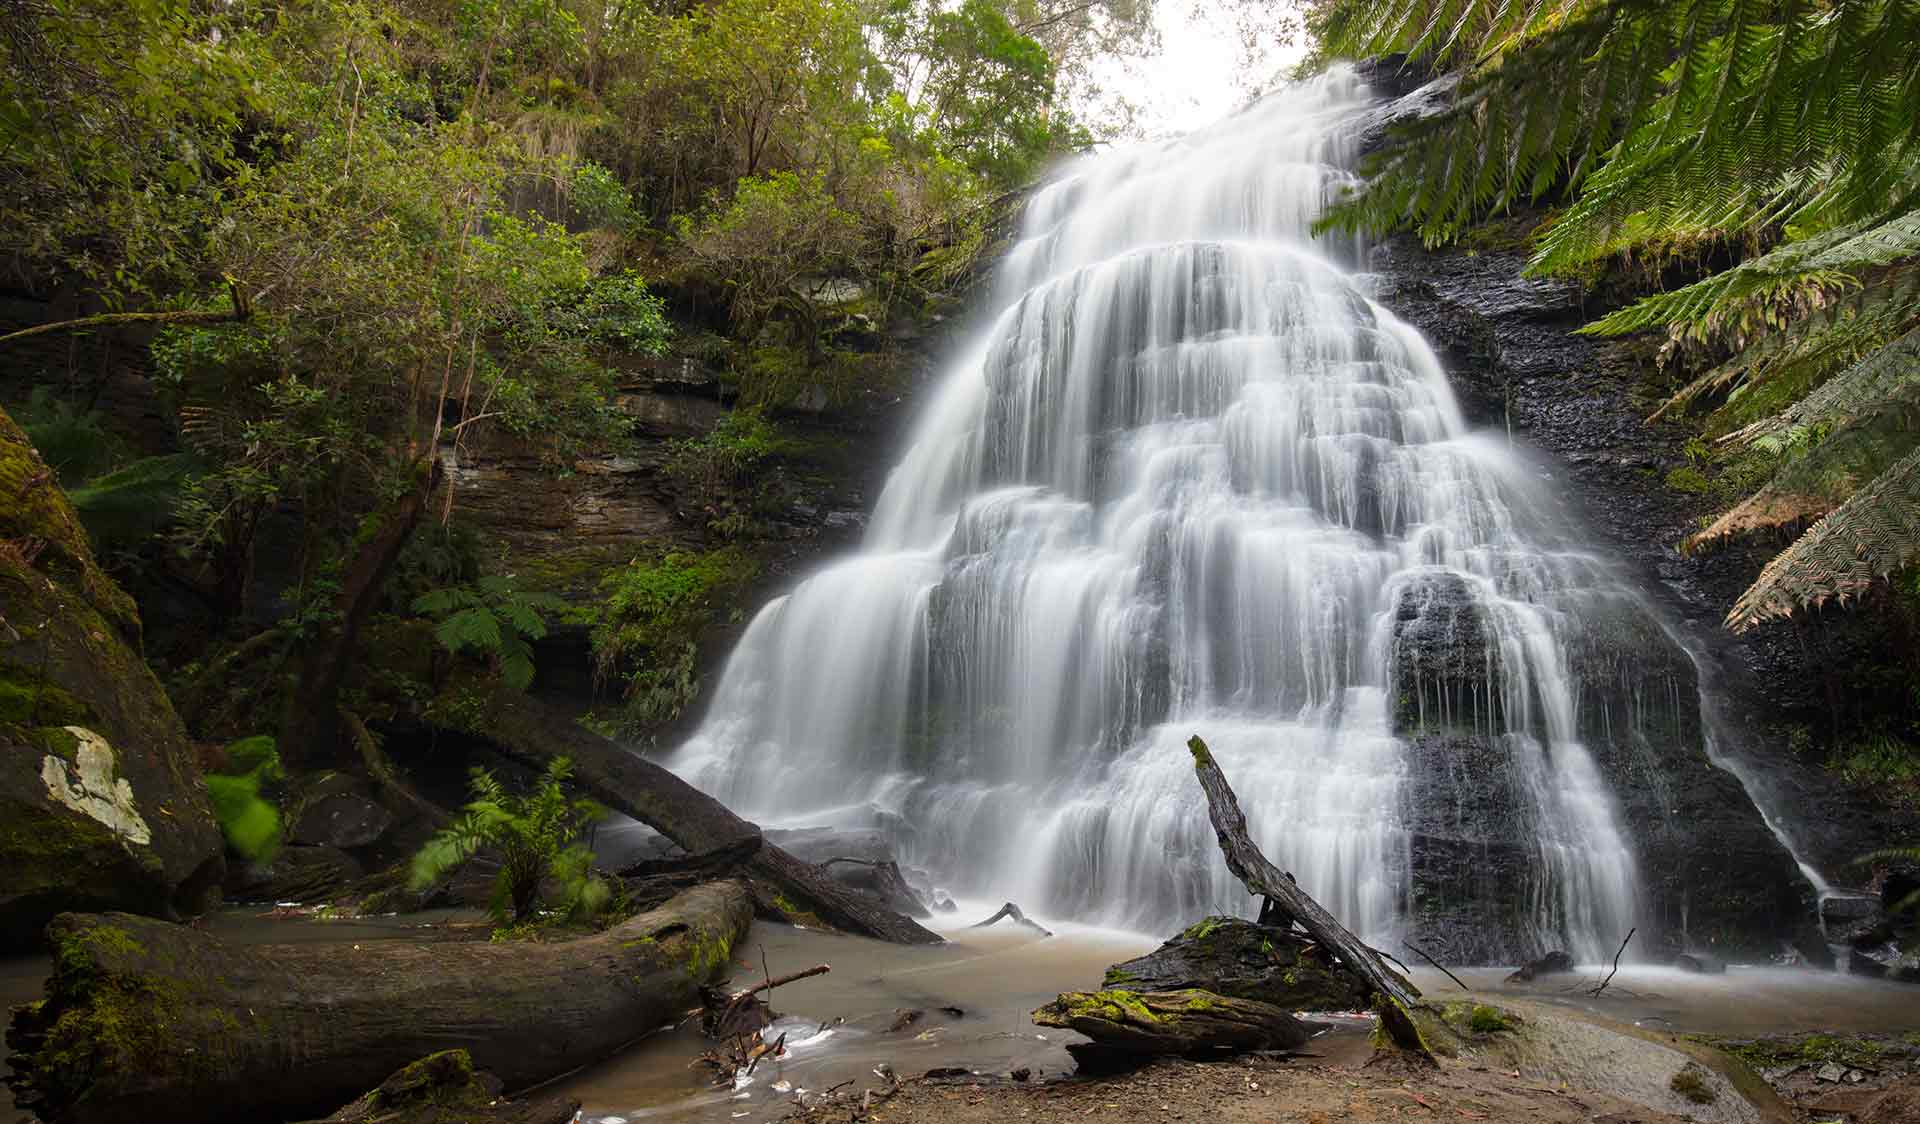 Henderson Falls near Sheoak Picnic Area at Lorne in the Great Otway National Park